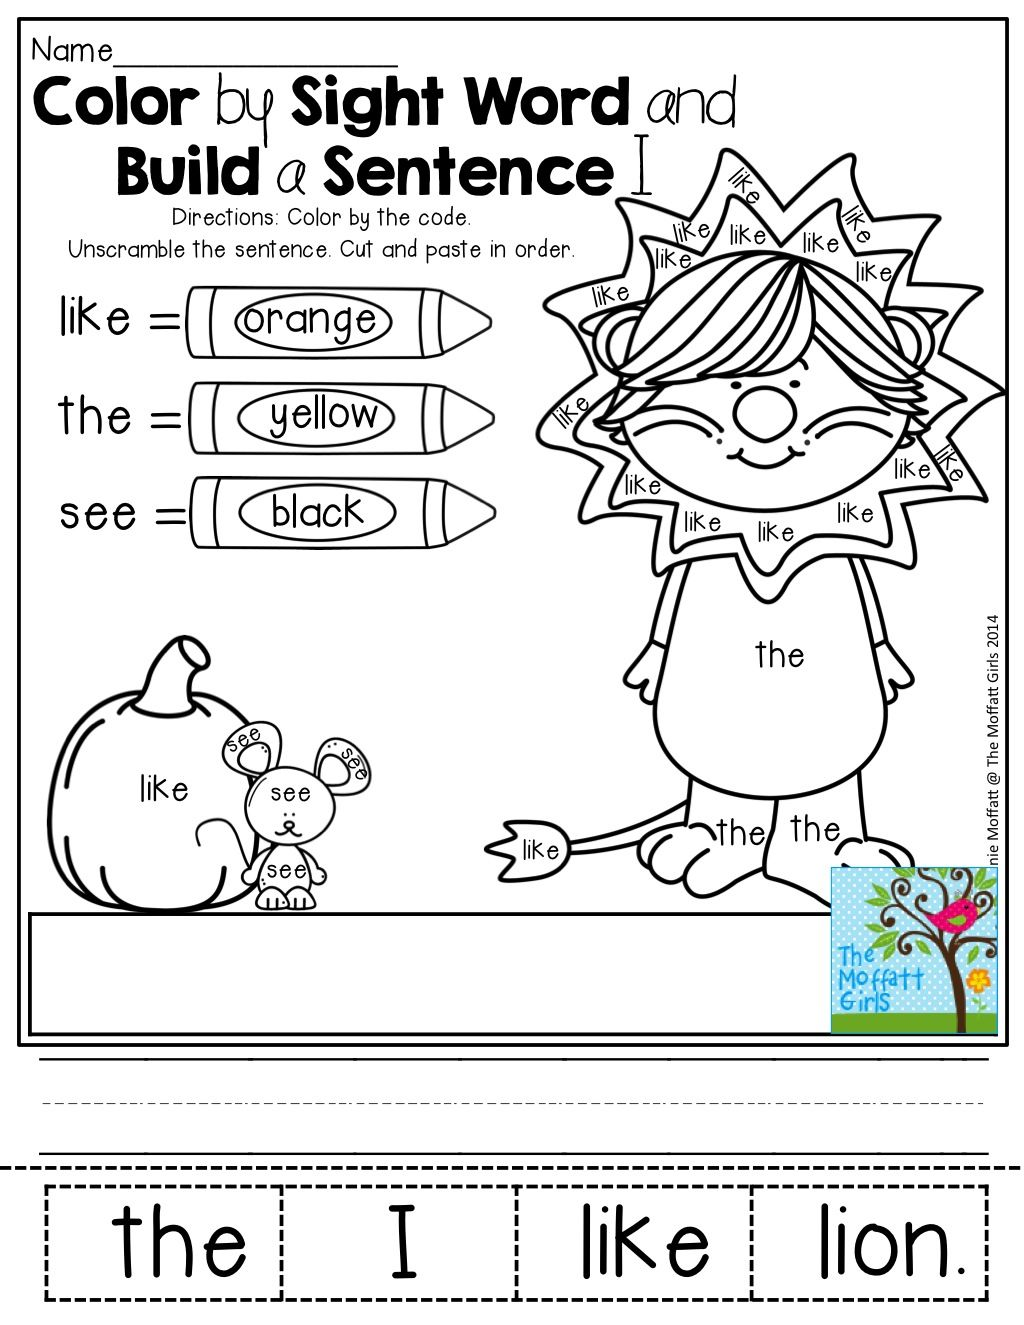 Color By Sight Word And Build A Sentence So Many Fun And